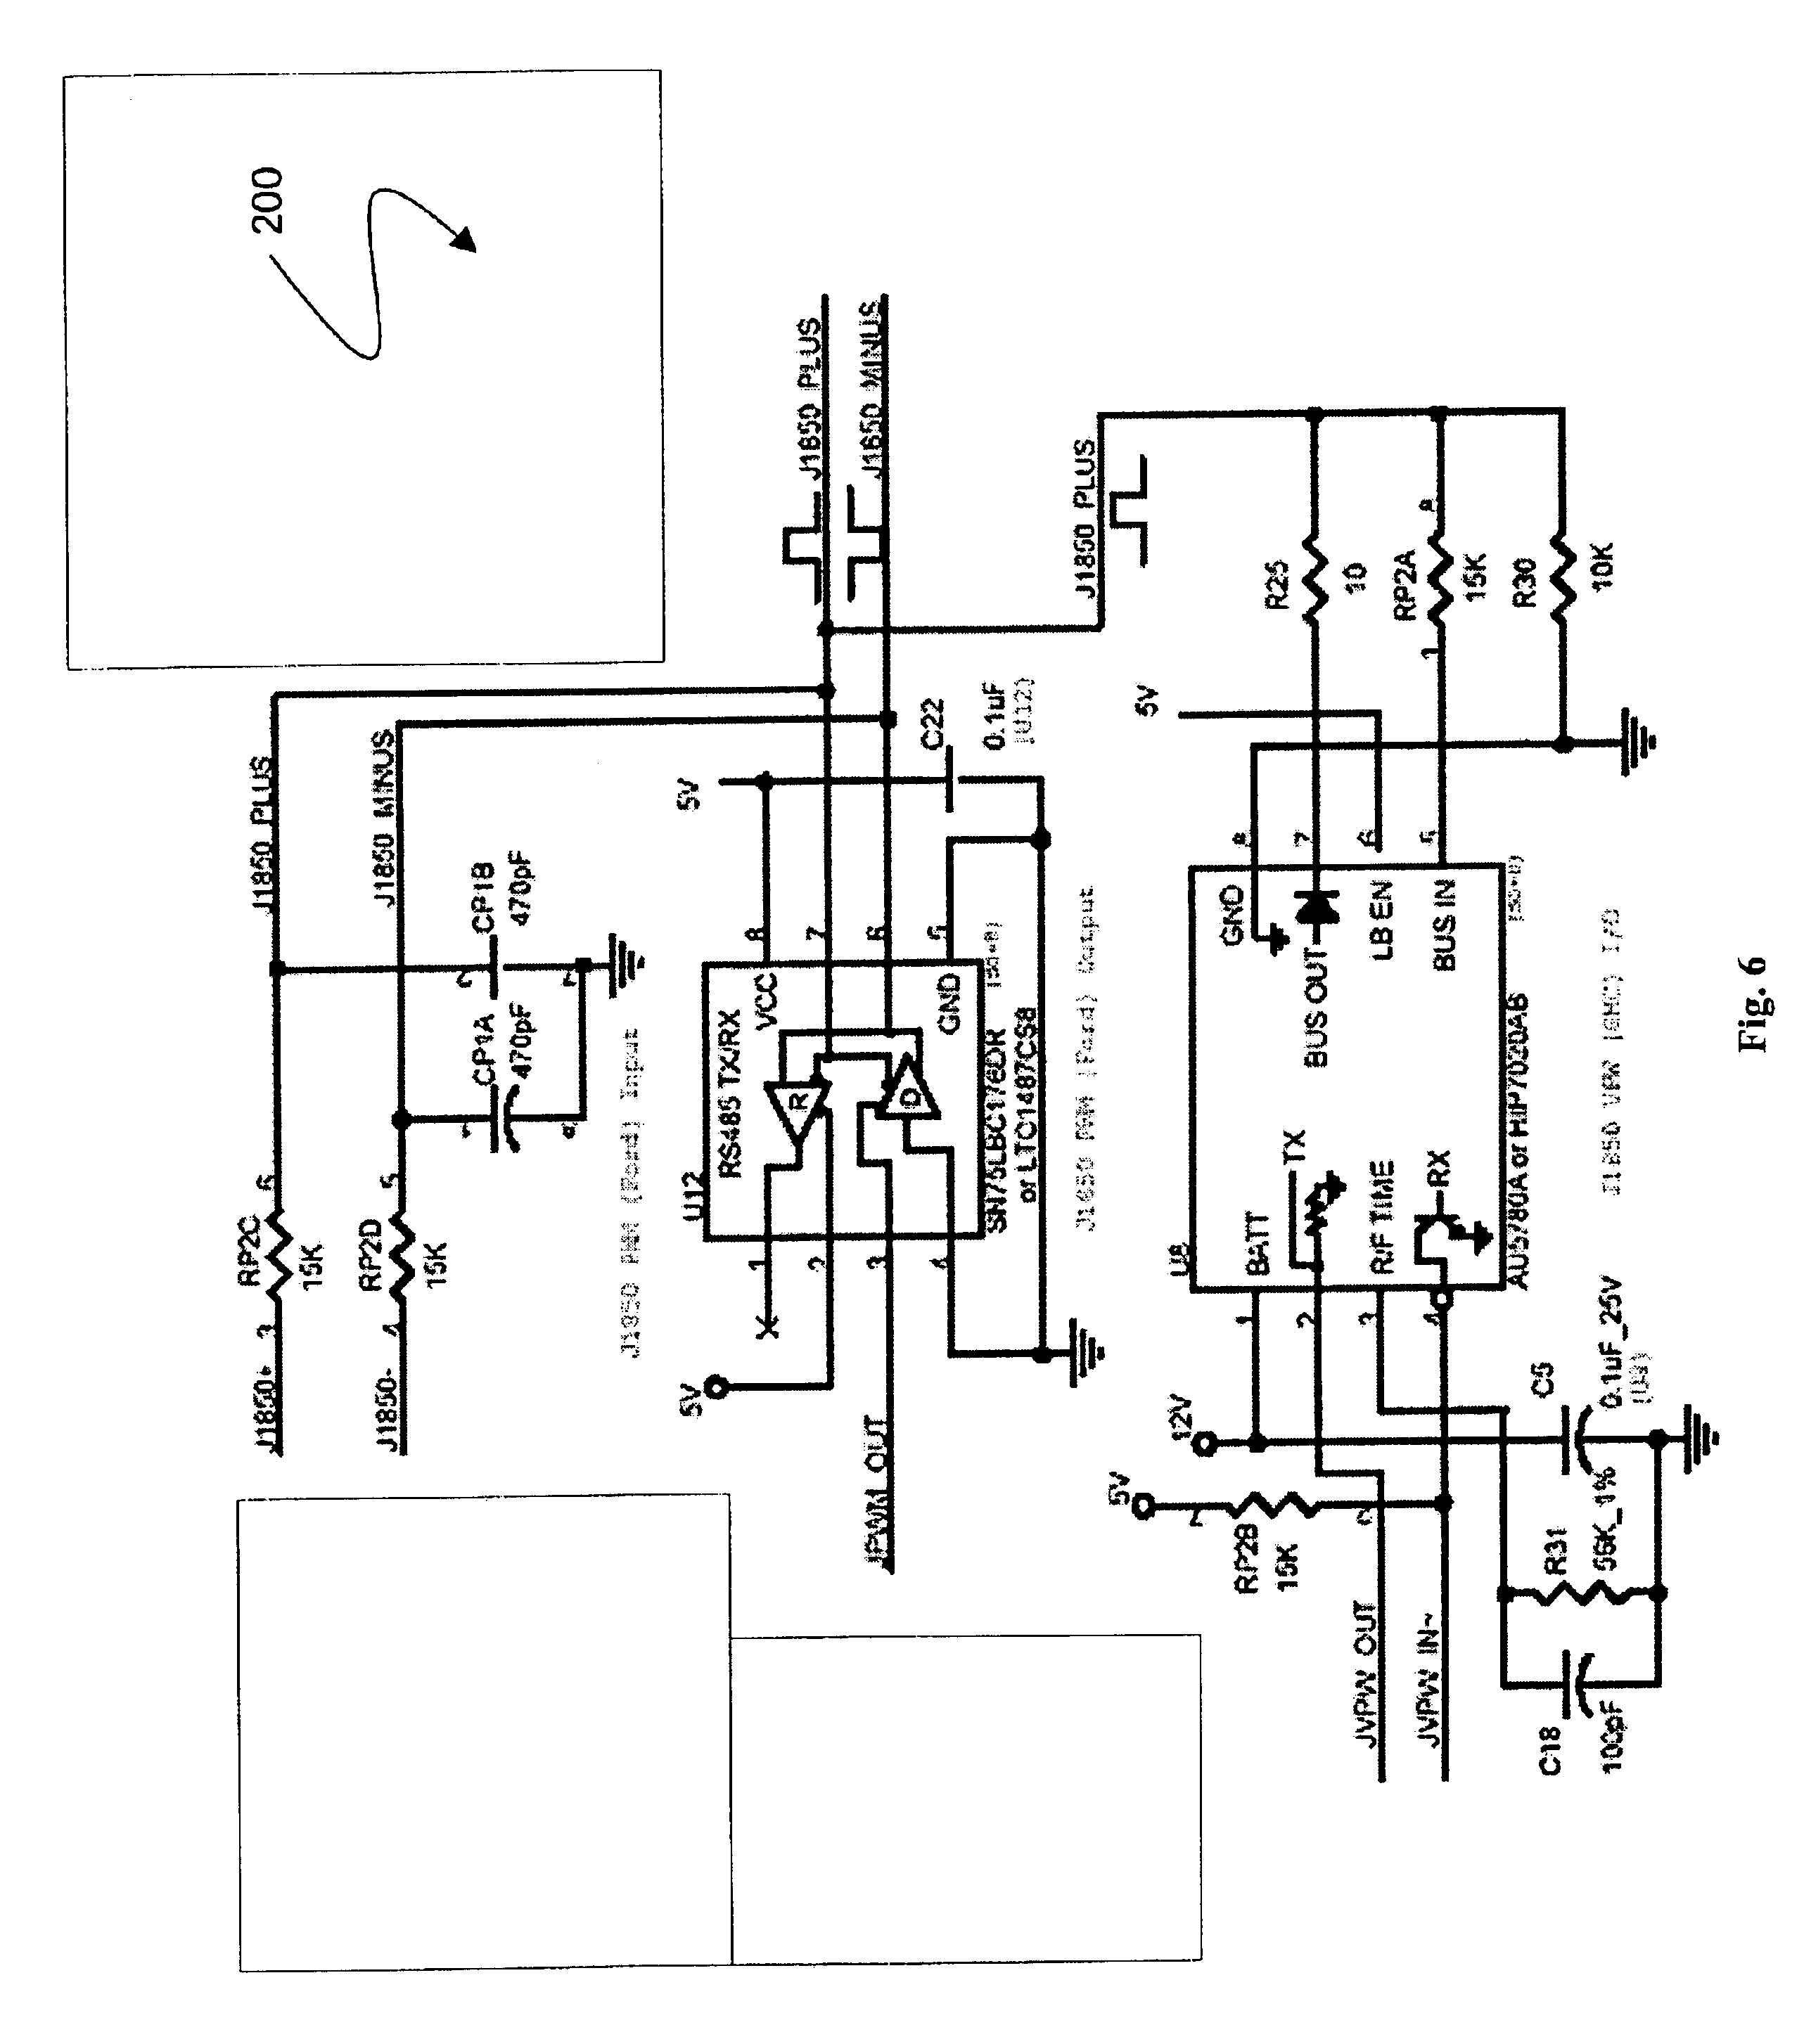 patent us6957133 small scale integrated vehicle telematics patent drawing